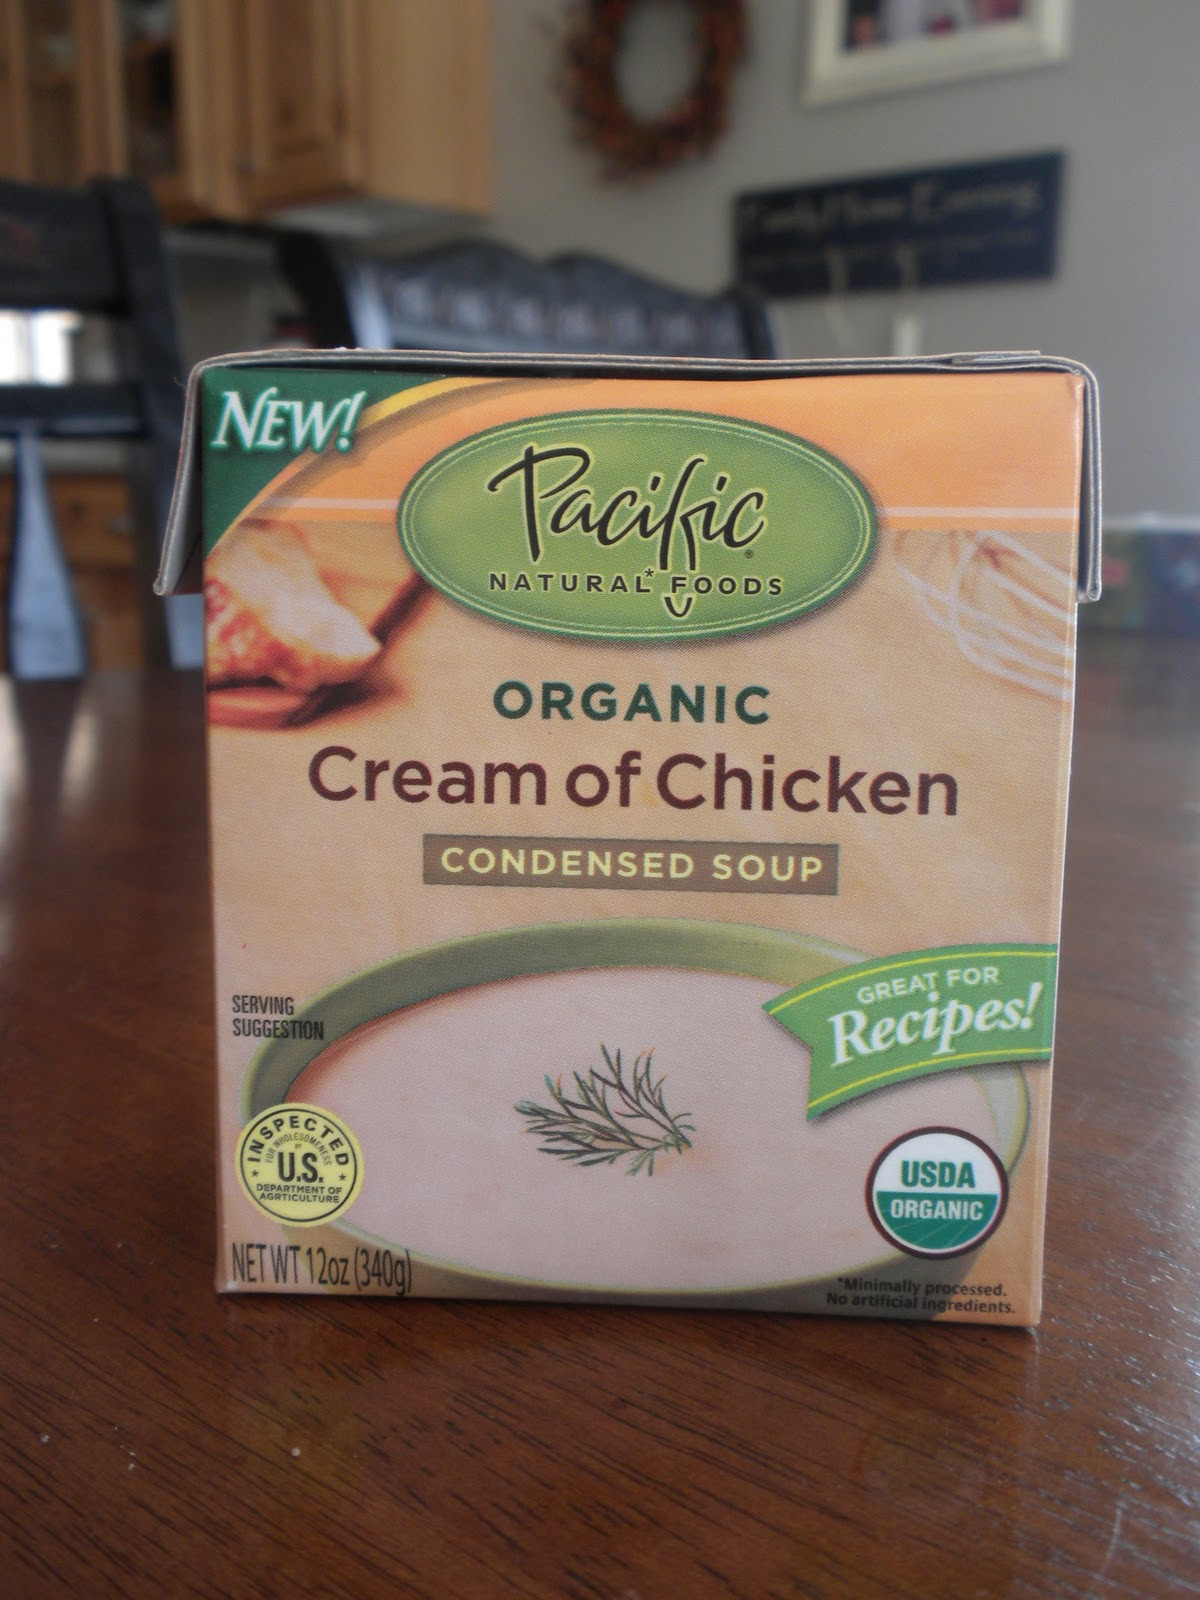 Gluten Free Cream Of Chicken Soup Brands  Gluten Free Eating Pacific Cream of Chicken soup